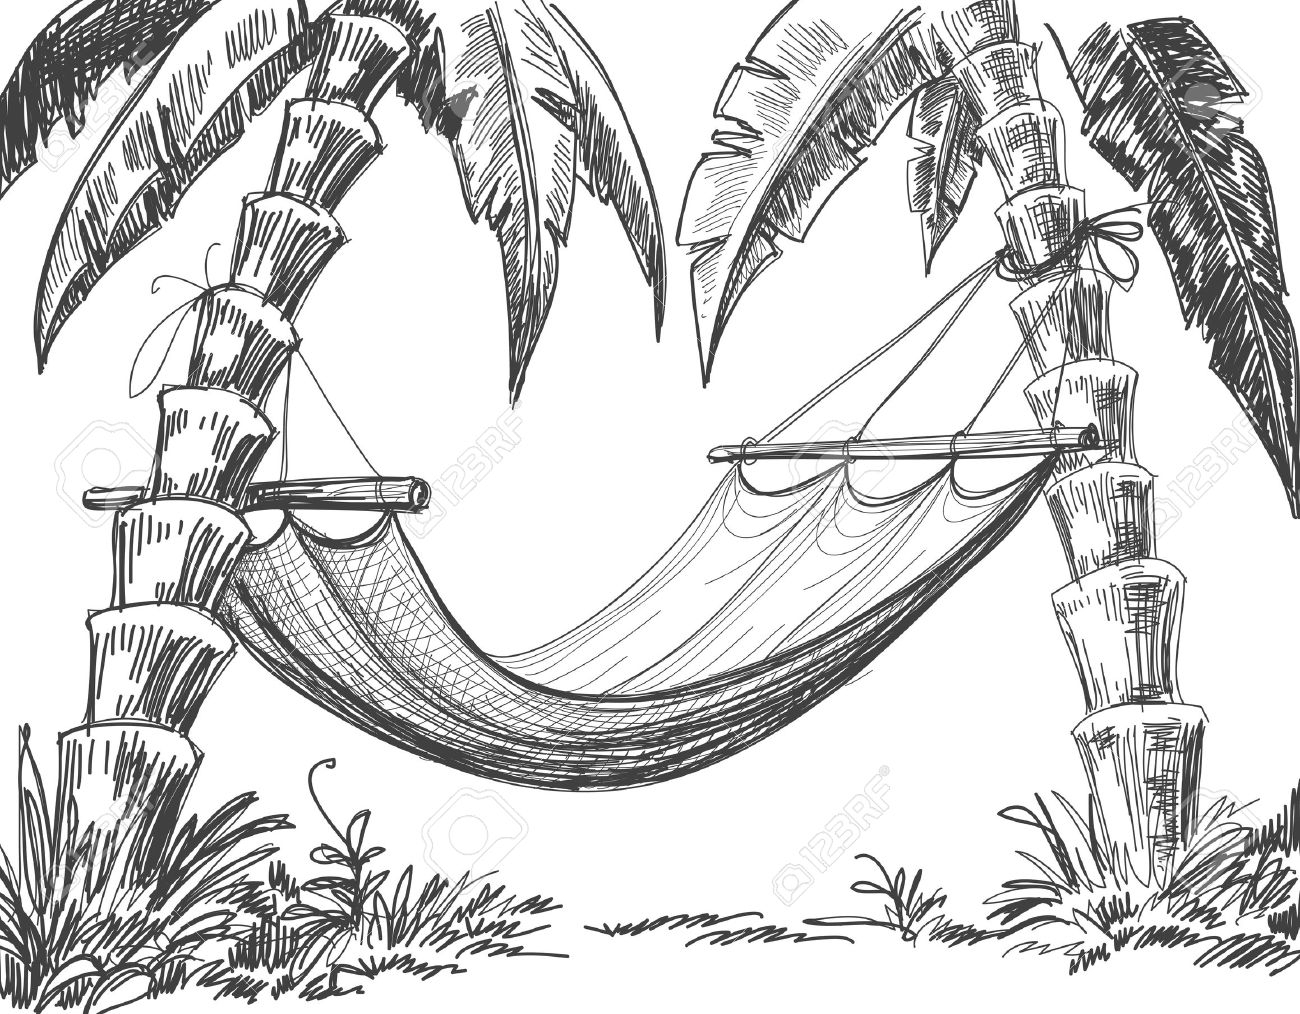 1300x1014 Palm Tree Pencil Drawing Sketches Of Tropical Islands